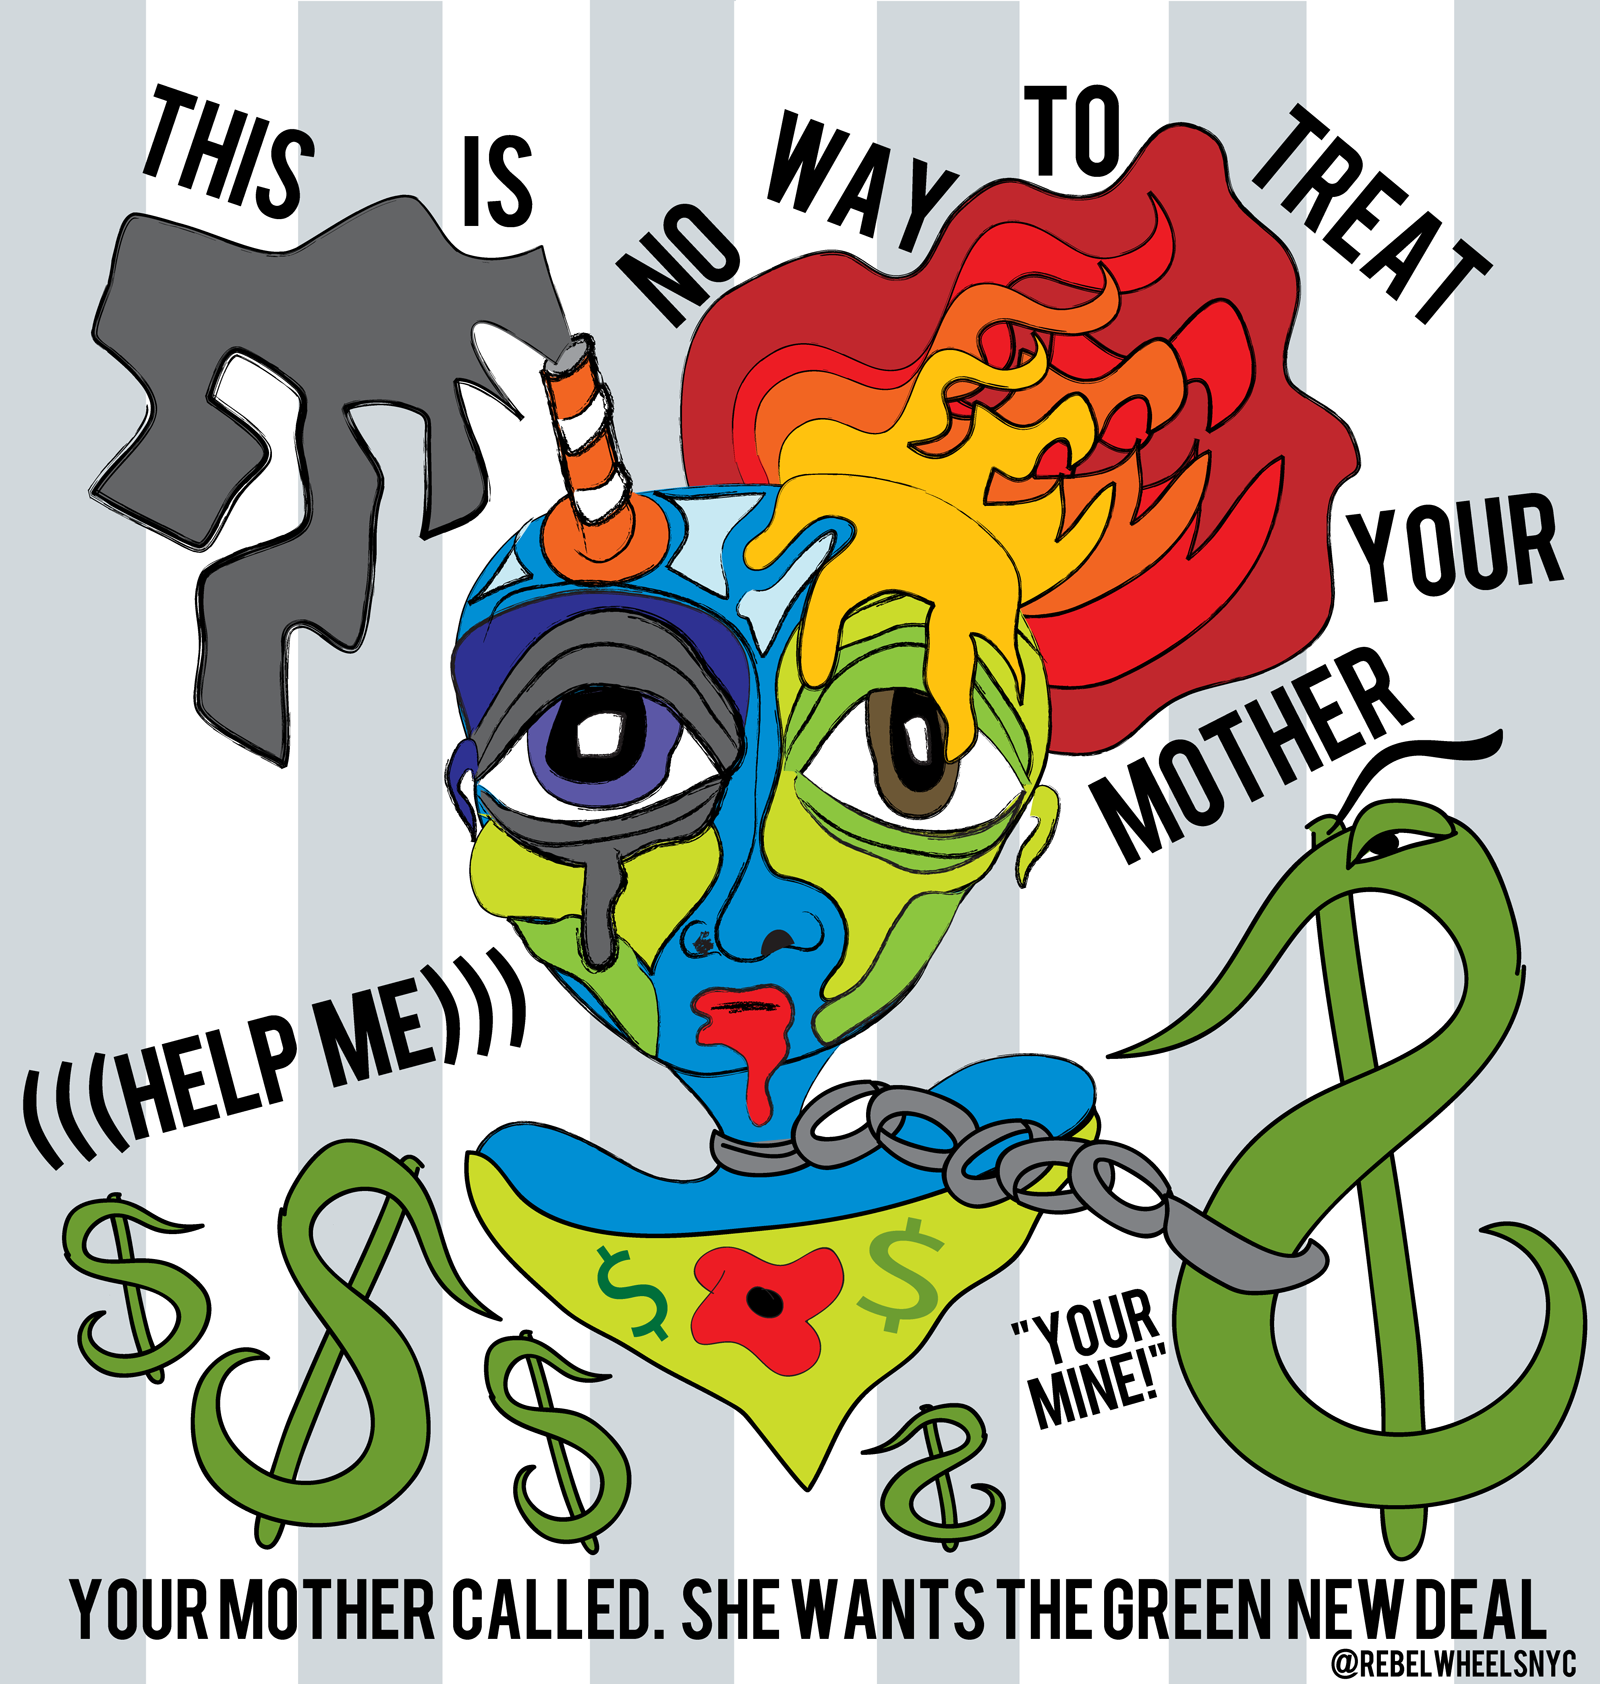 Michele Kaplan (@RebelWheelsNYC) – Your Mother Called